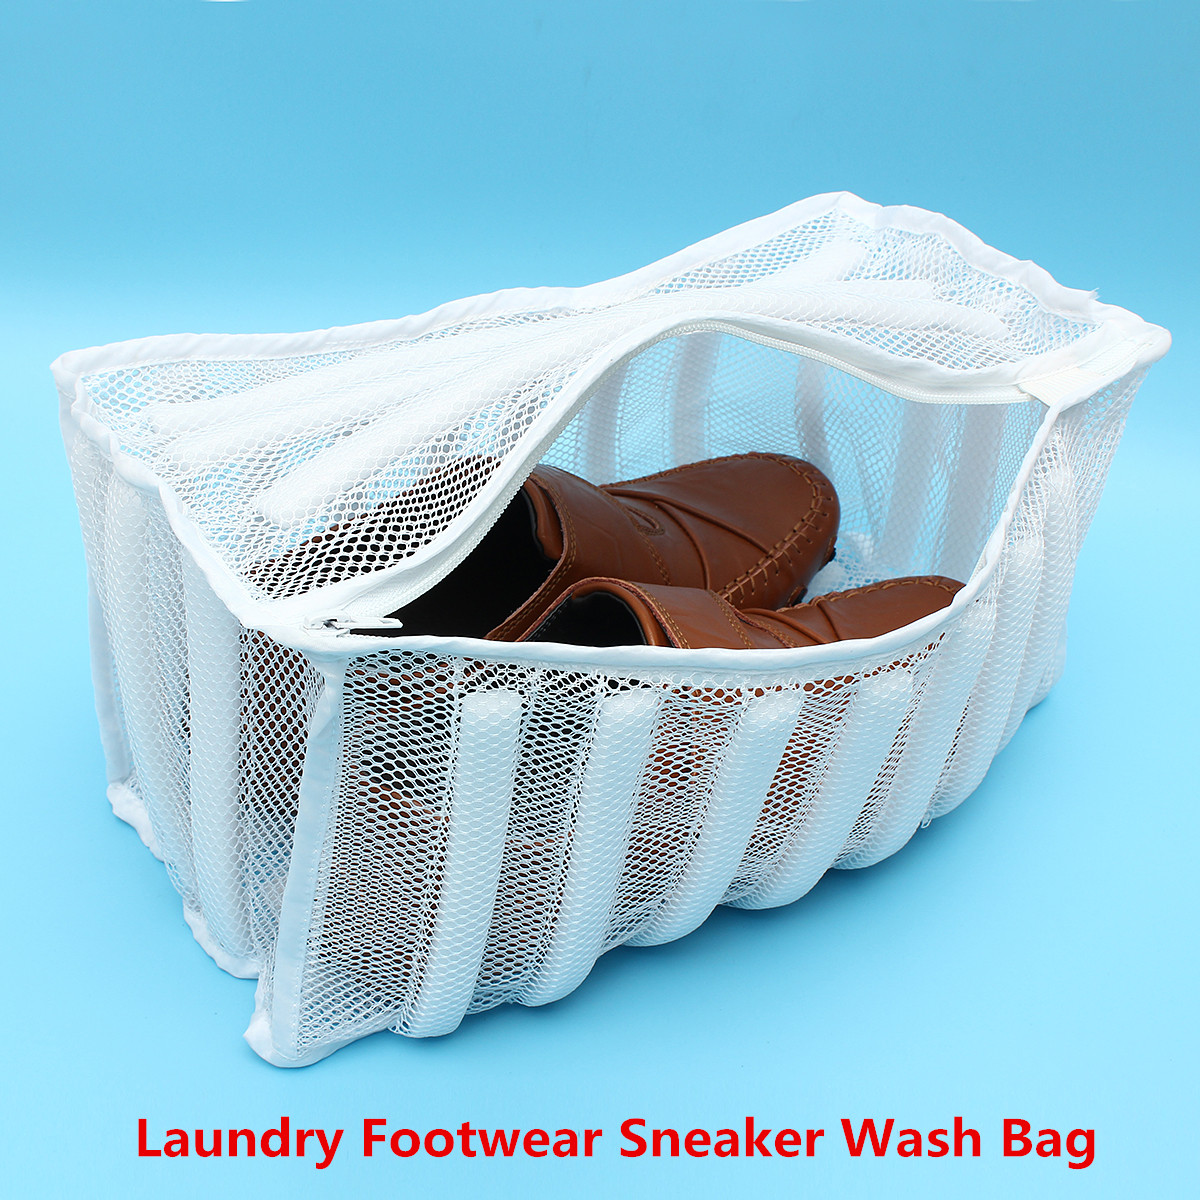 Laundry Footwear Sneaker Washer Dryer White Mesh Wash Bag Shoe Lingerie Clothes